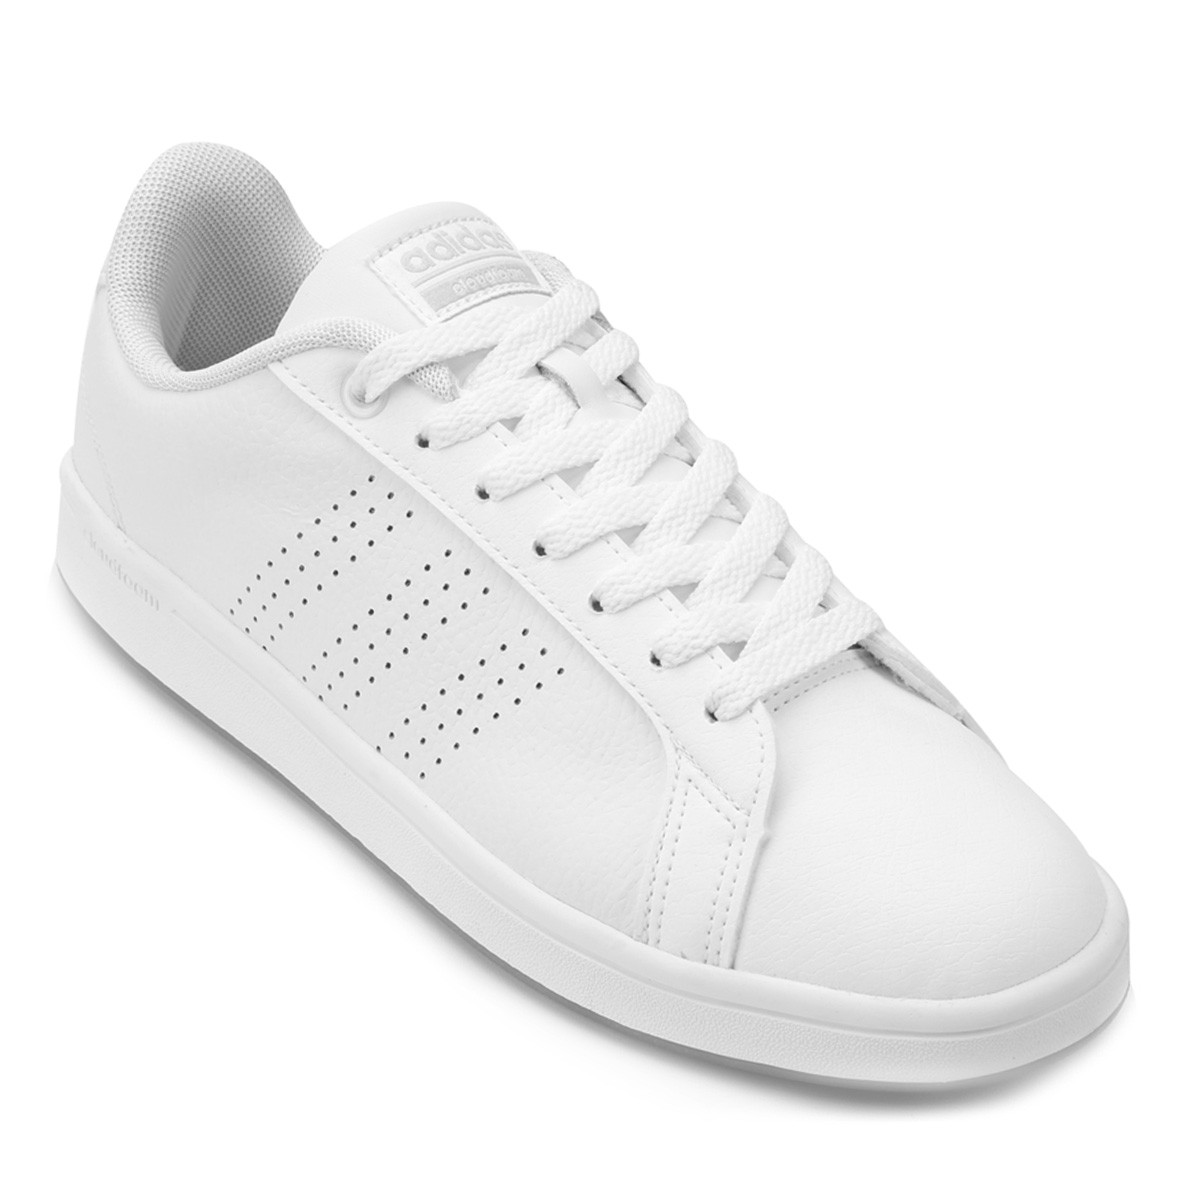 bb33ec823ae Calcebel Tenis Adidas Advantage Clean qt w B44667